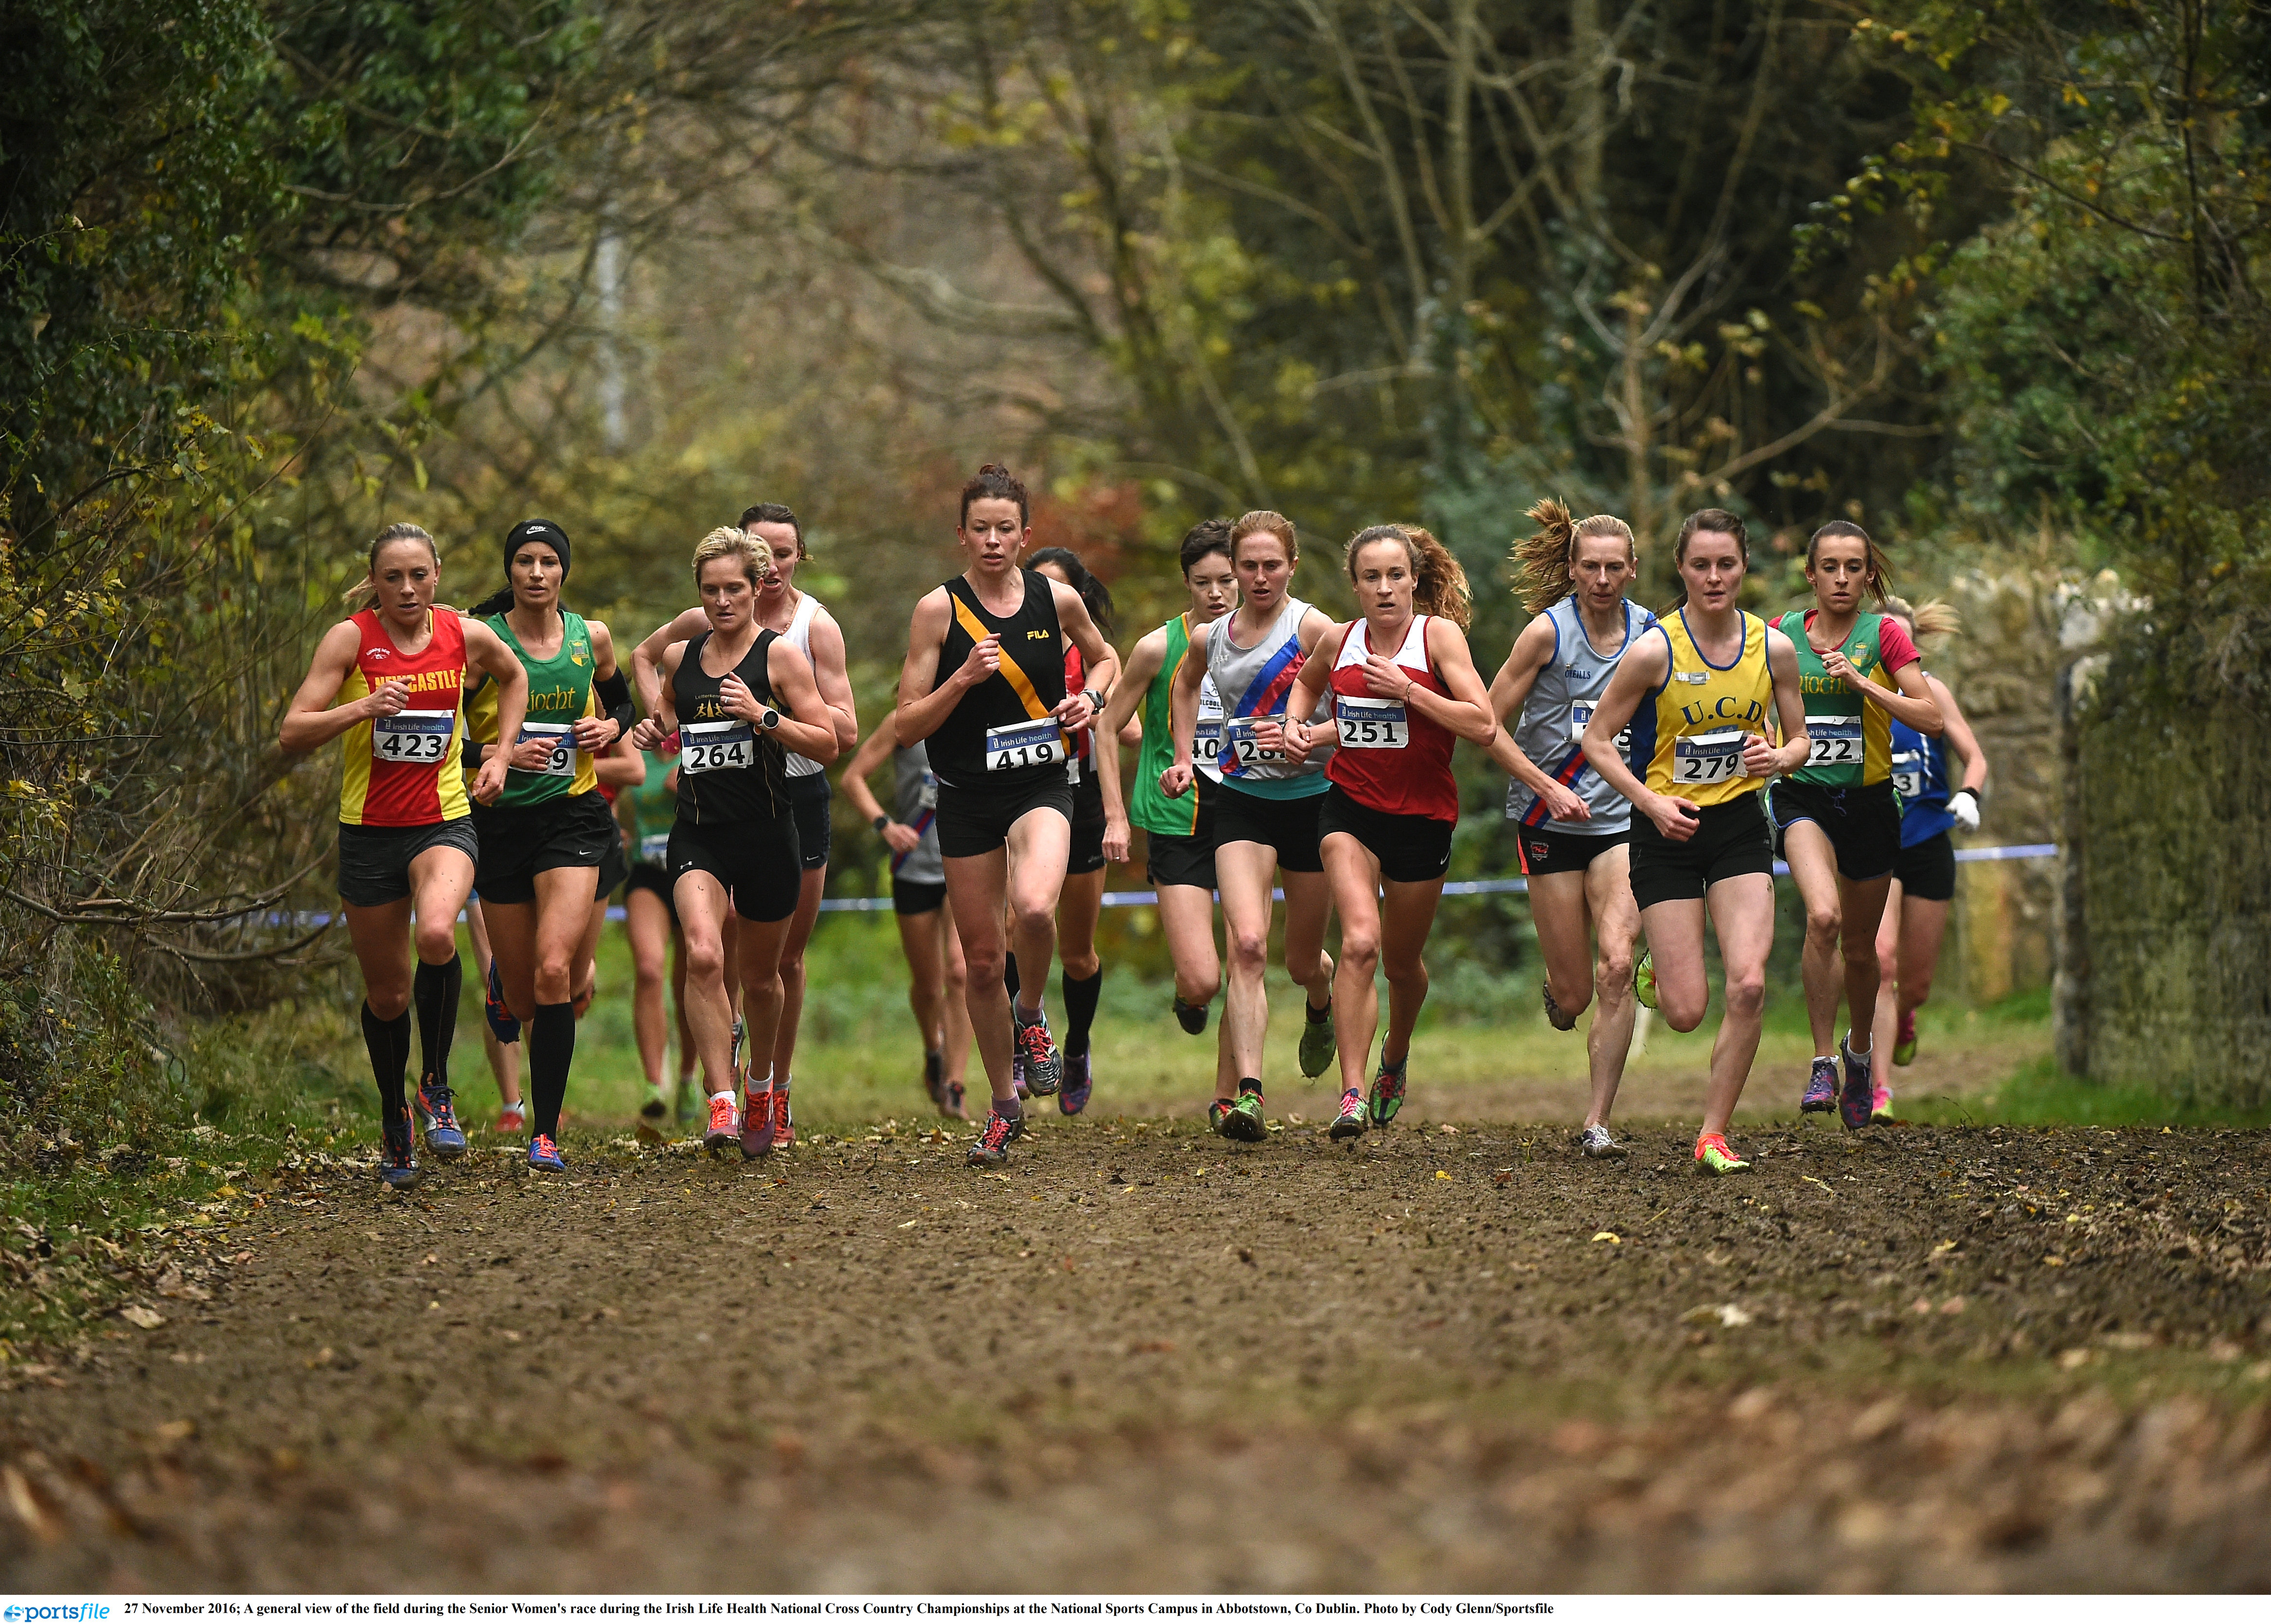 Application for regrading for the cross country season 2017-2018